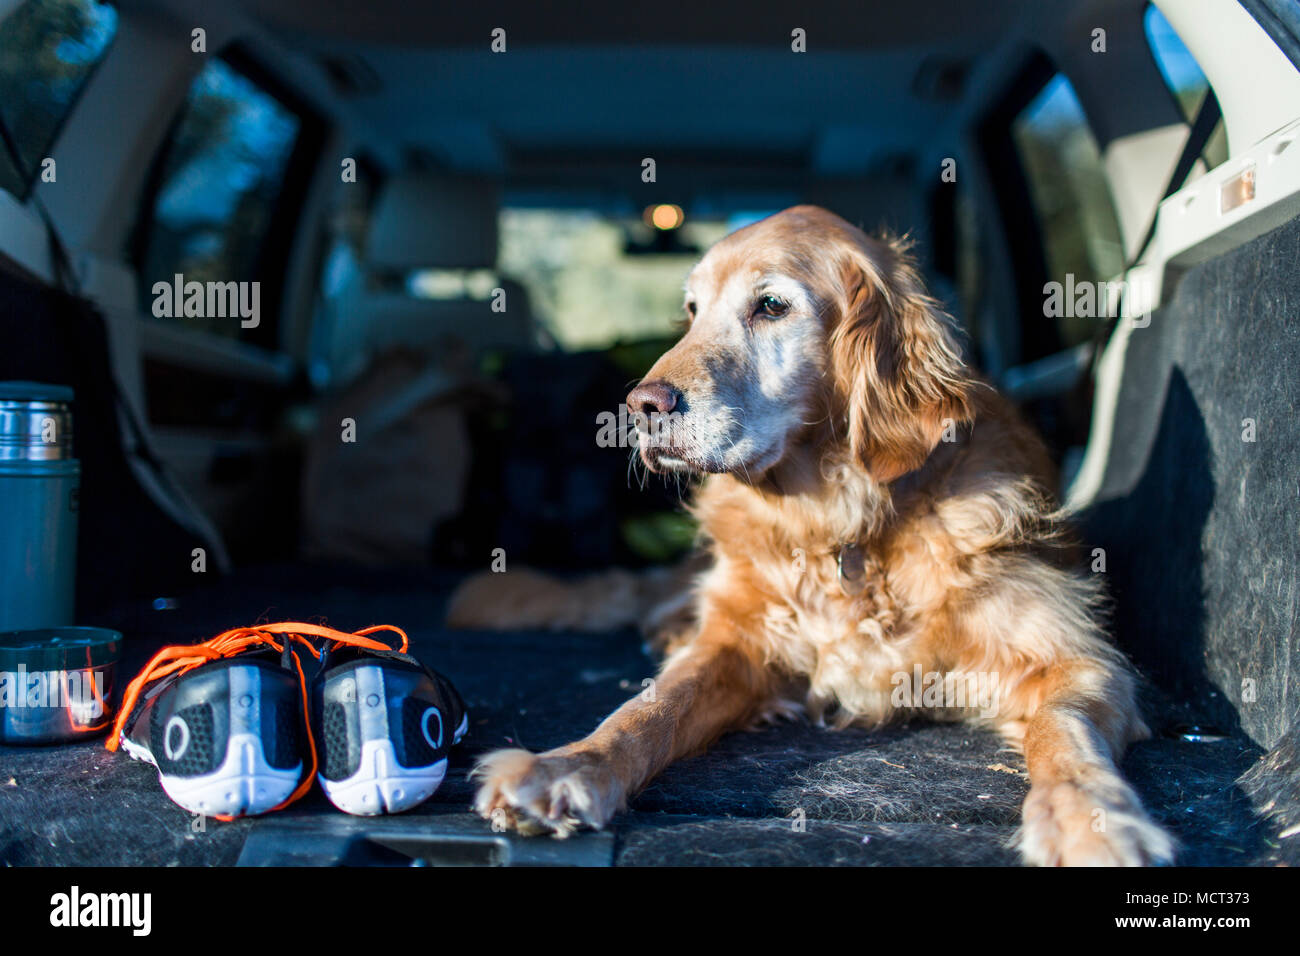 Dog sitting in car trunk - Stock Image